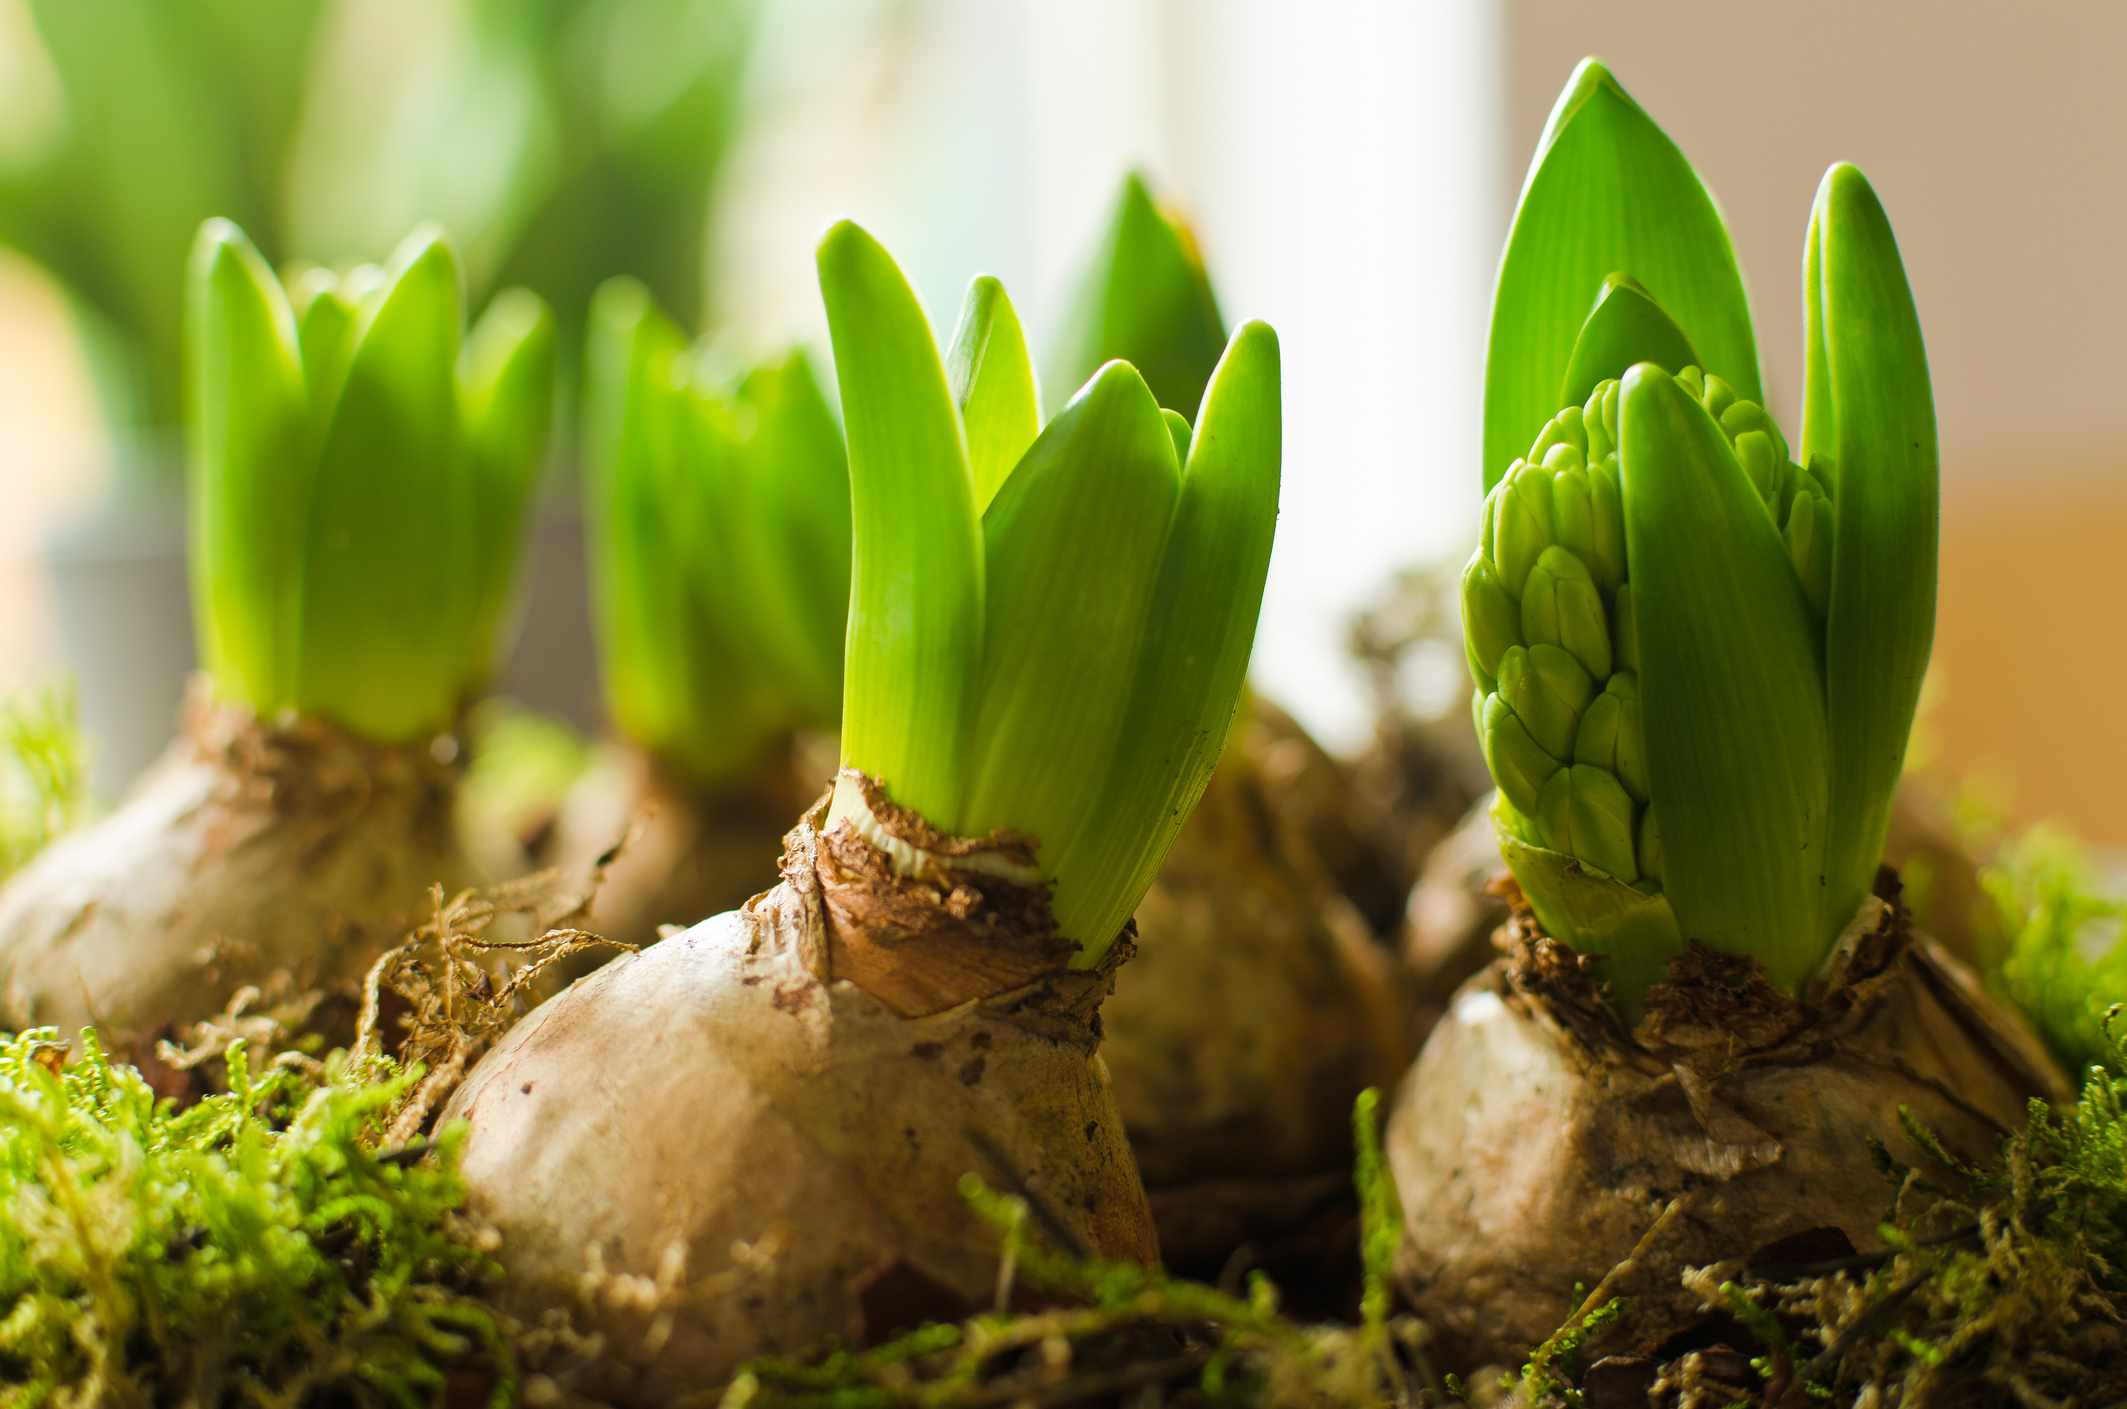 Hyacinths with flowers forming